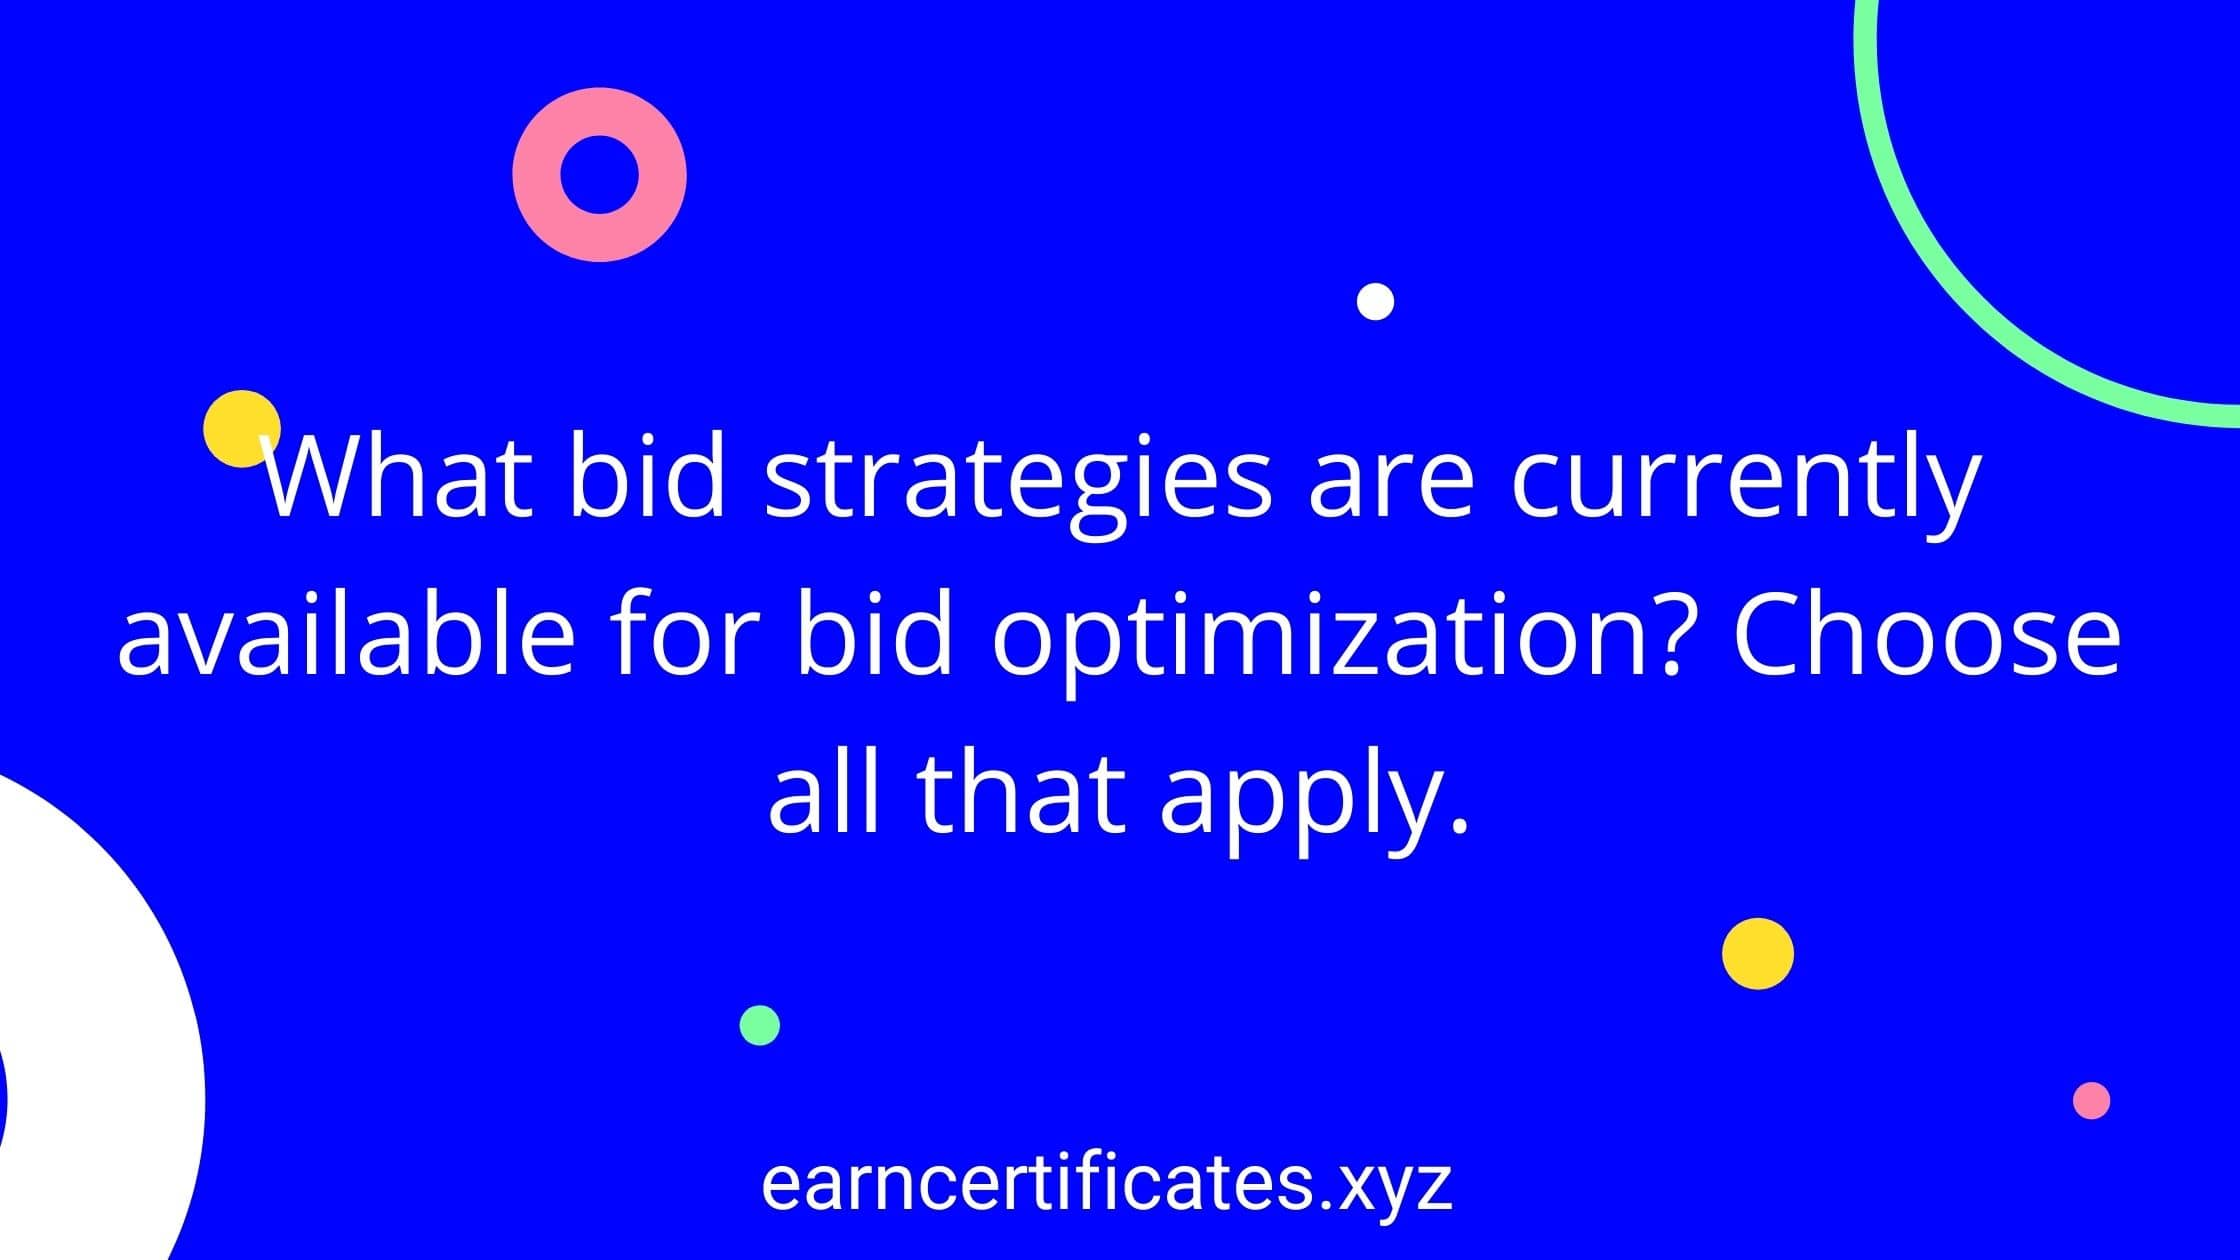 What bid strategies are currently available for bid optimization? Choose all that apply.